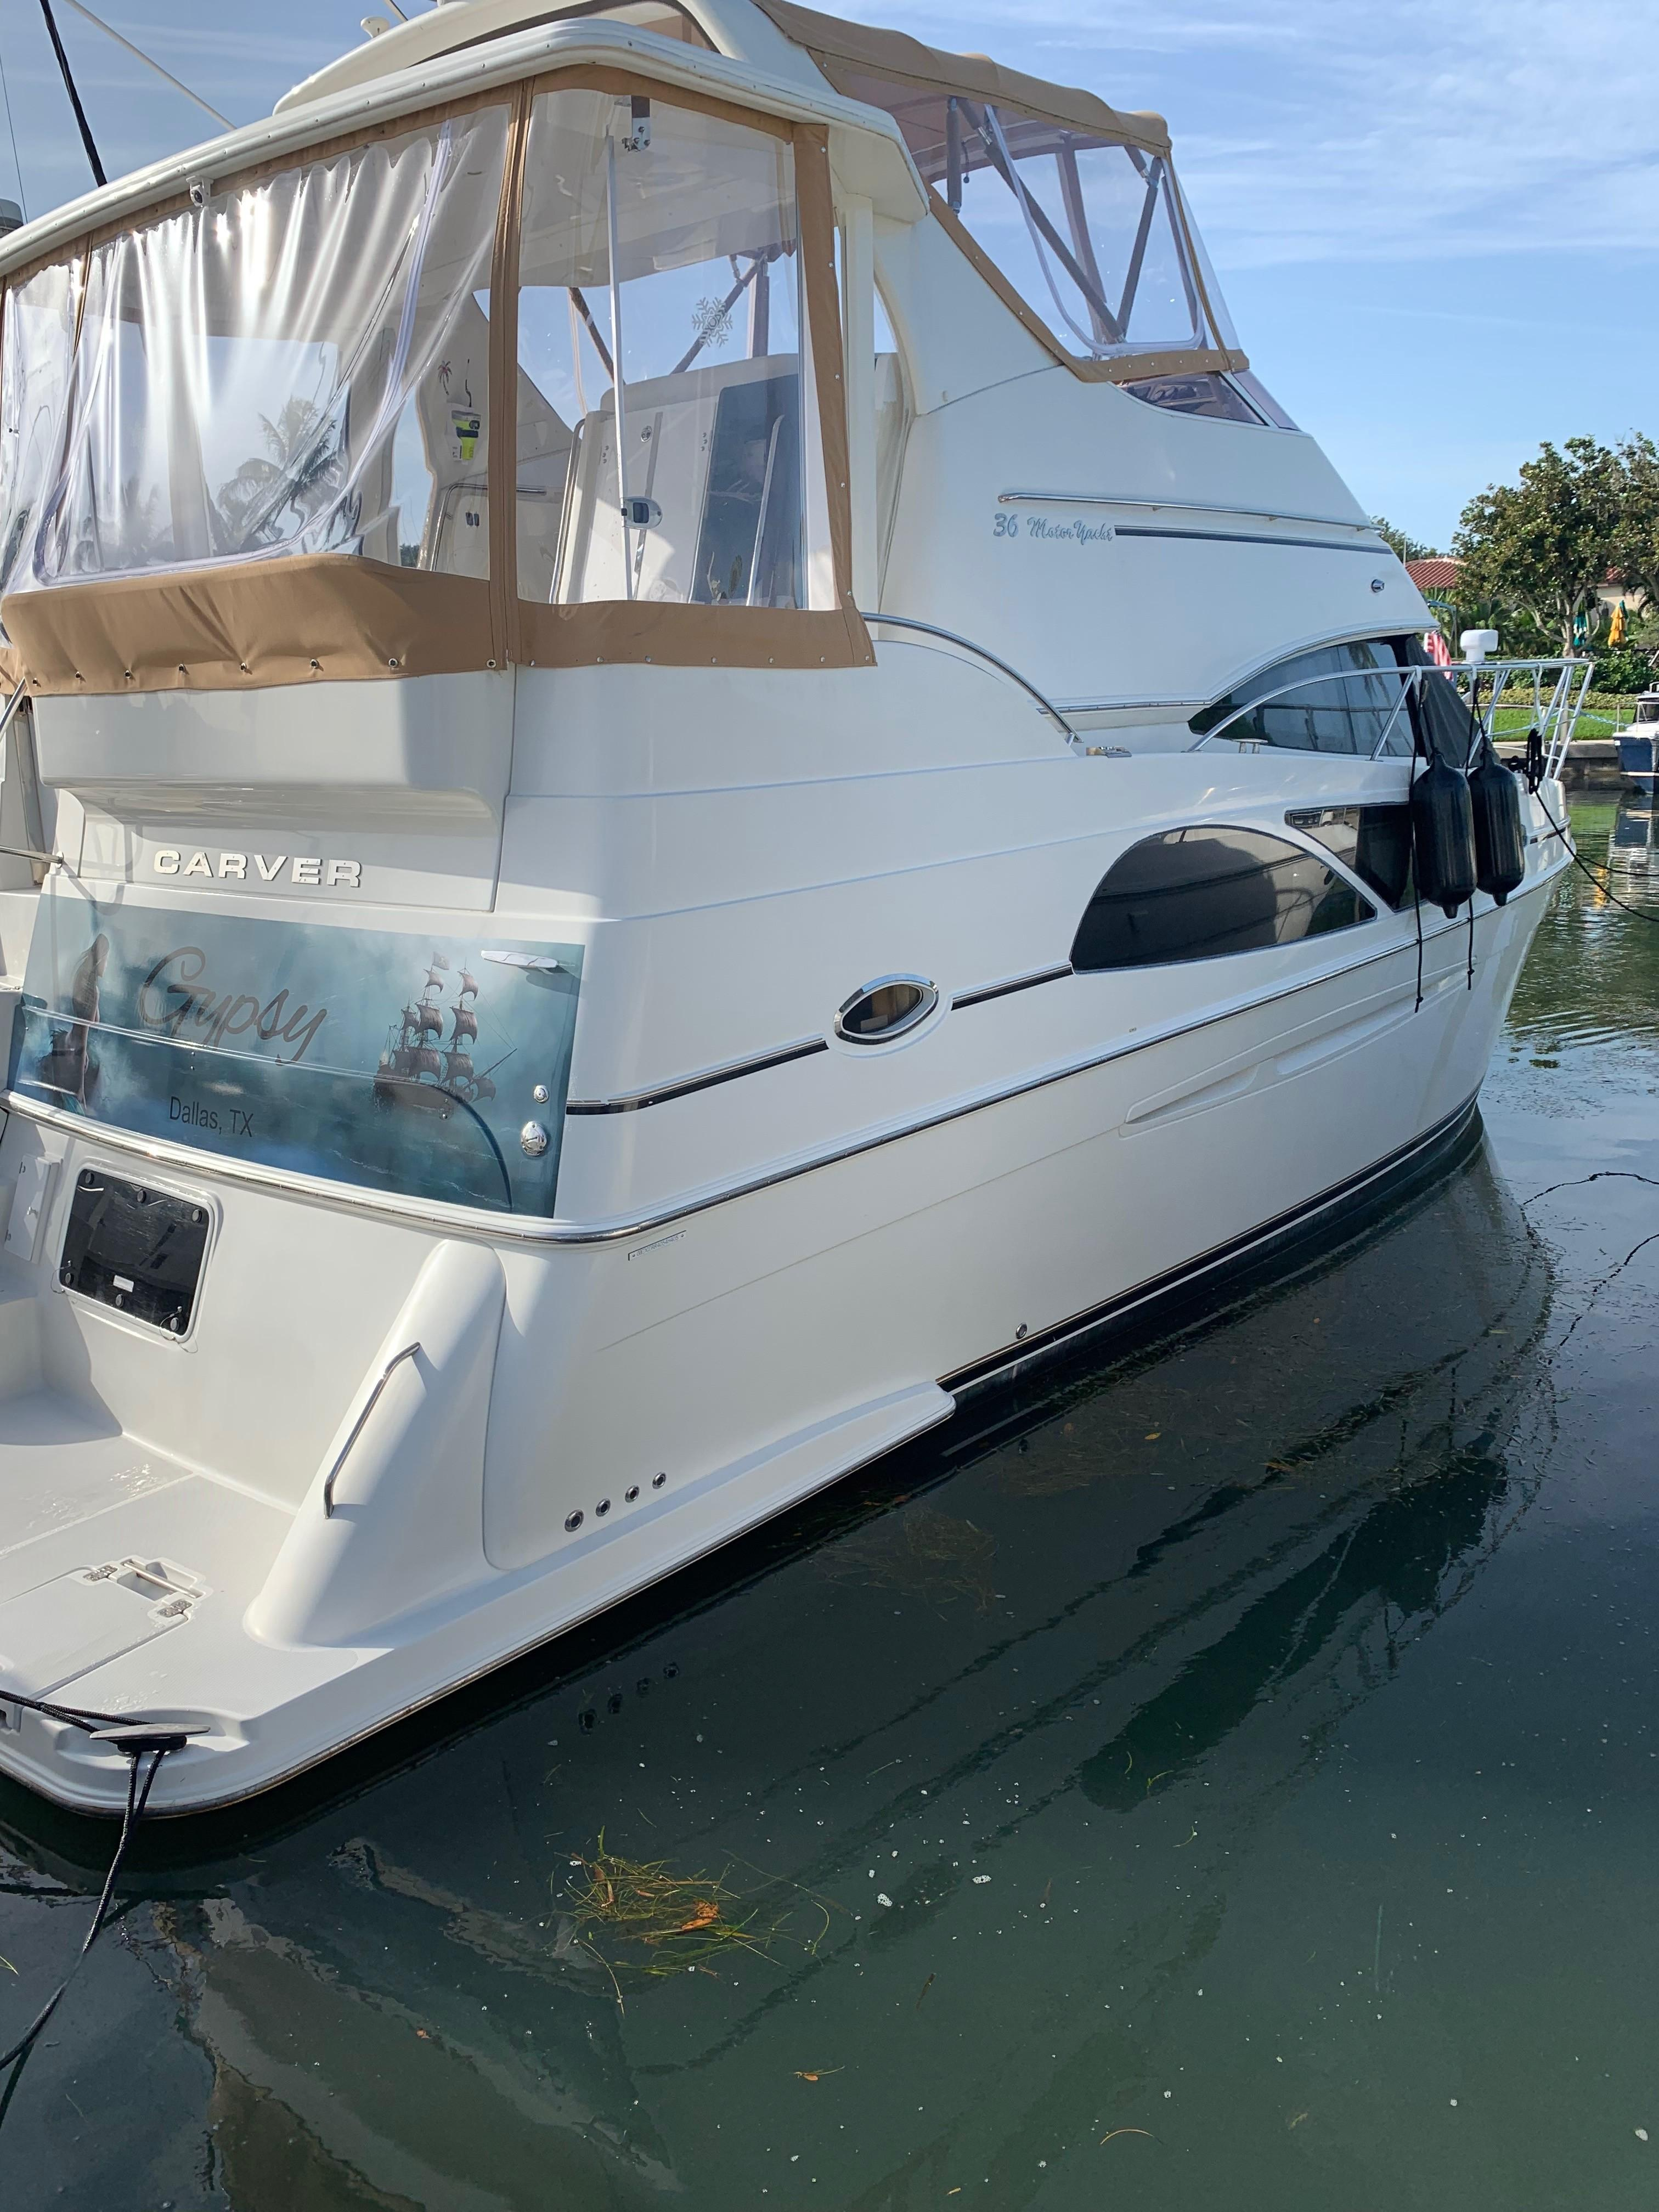 Carver 36 Motor Yacht - Sarboard View